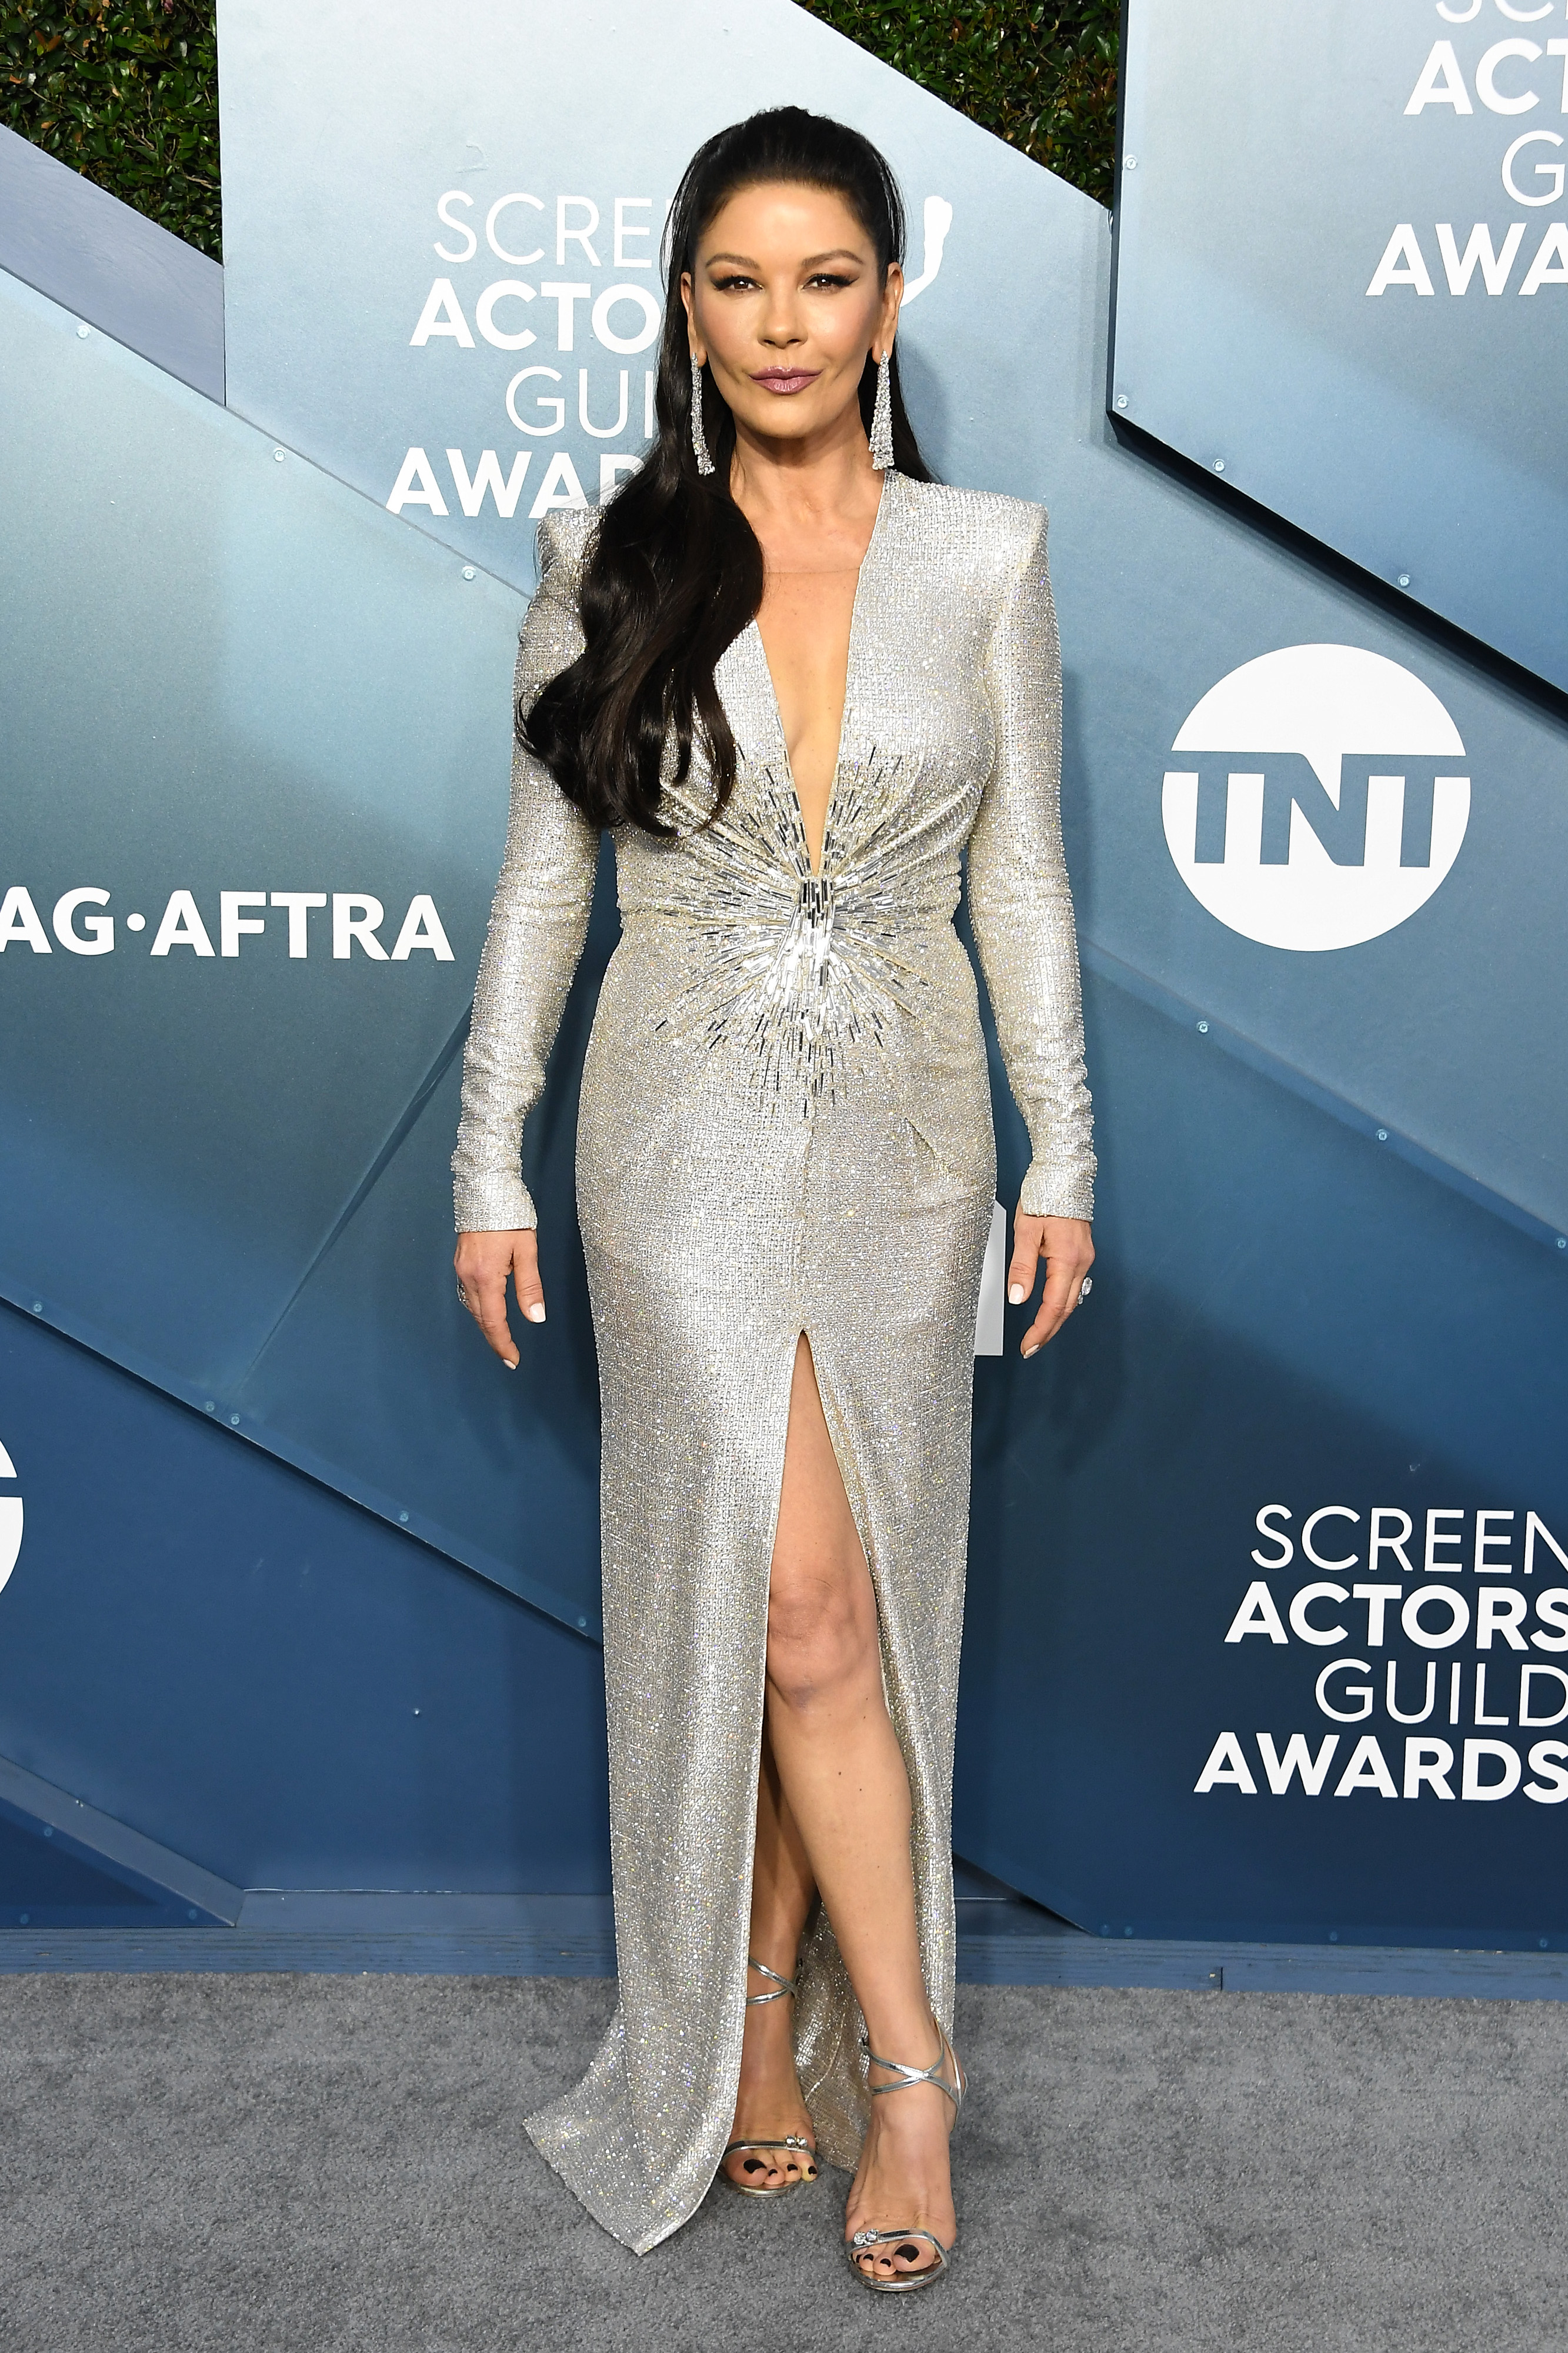 LOS ANGELES, CALIFORNIA - JANUARY 19: Catherine Zeta-Jones attends the 26th Annual Screen ActorsGuild Awards at The Shrine Auditorium on January 19, 2020 in Los Angeles, California. (Photo by Steve Granitz/WireImage)